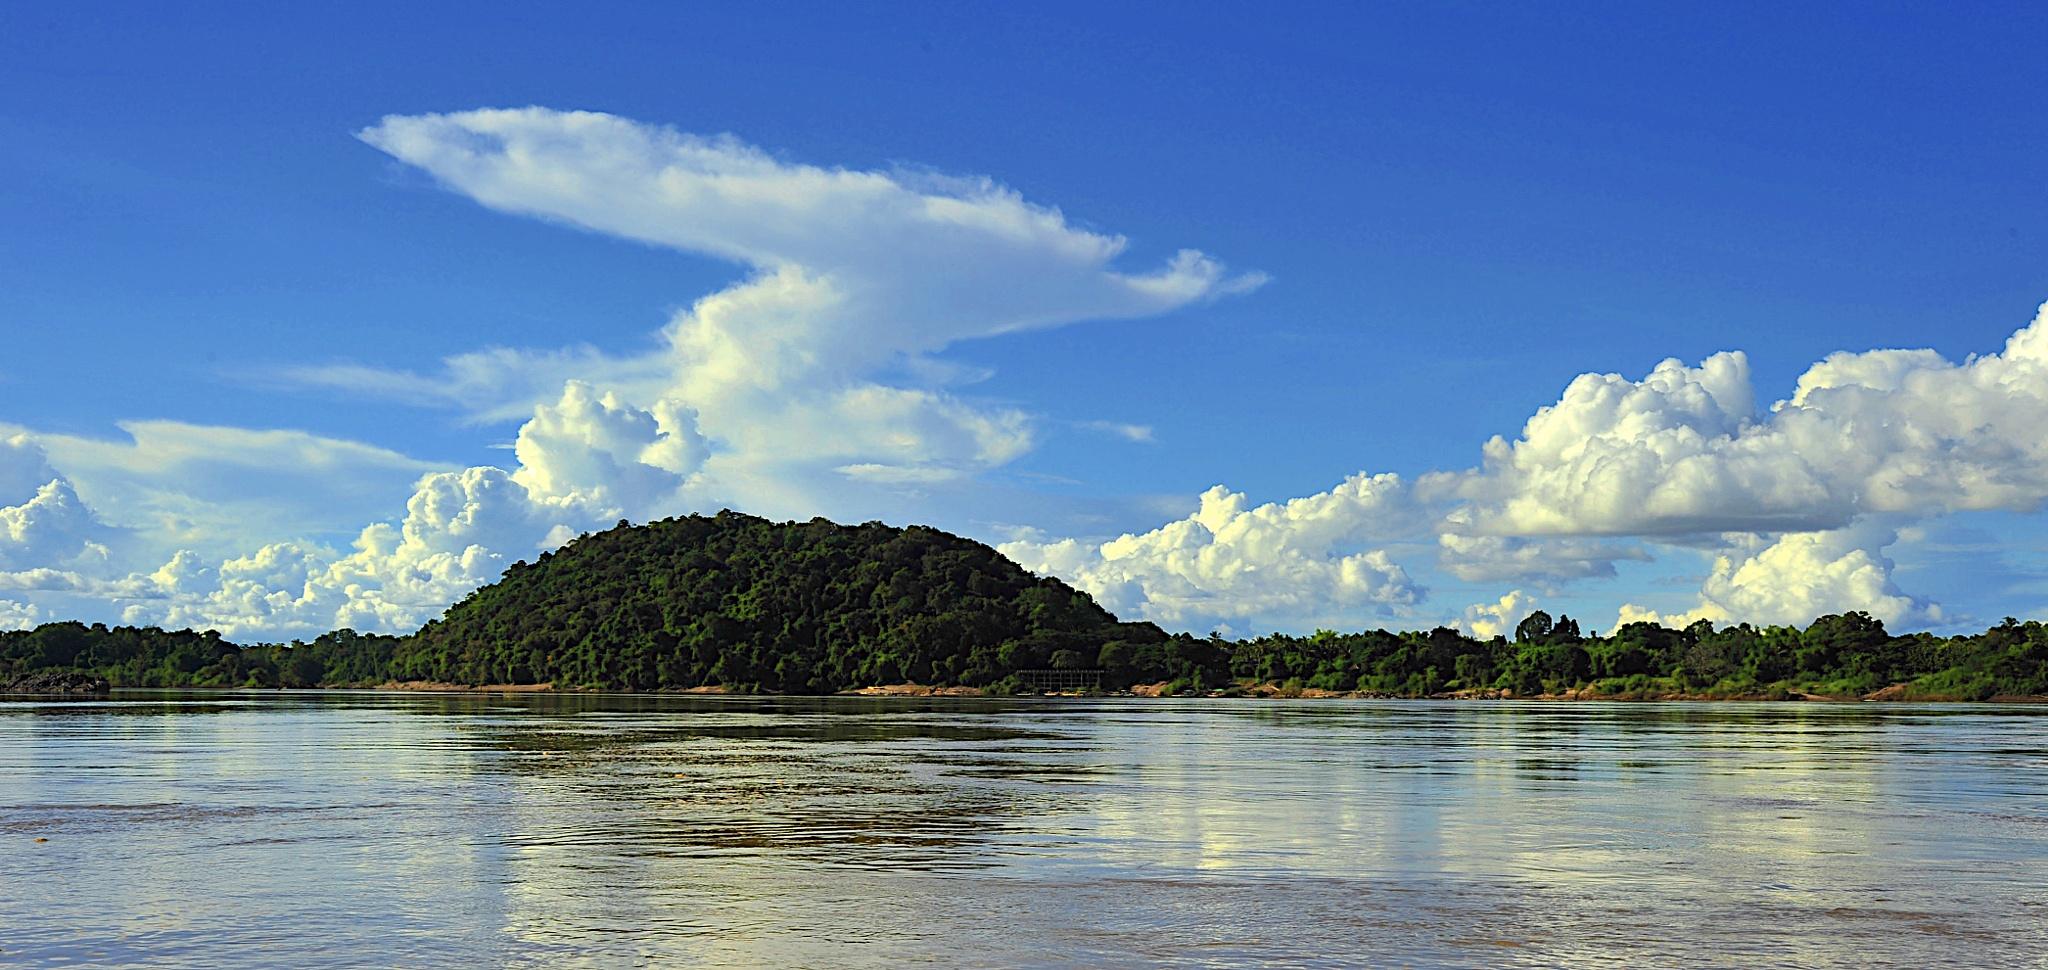 clouds over the Mekong by macplox